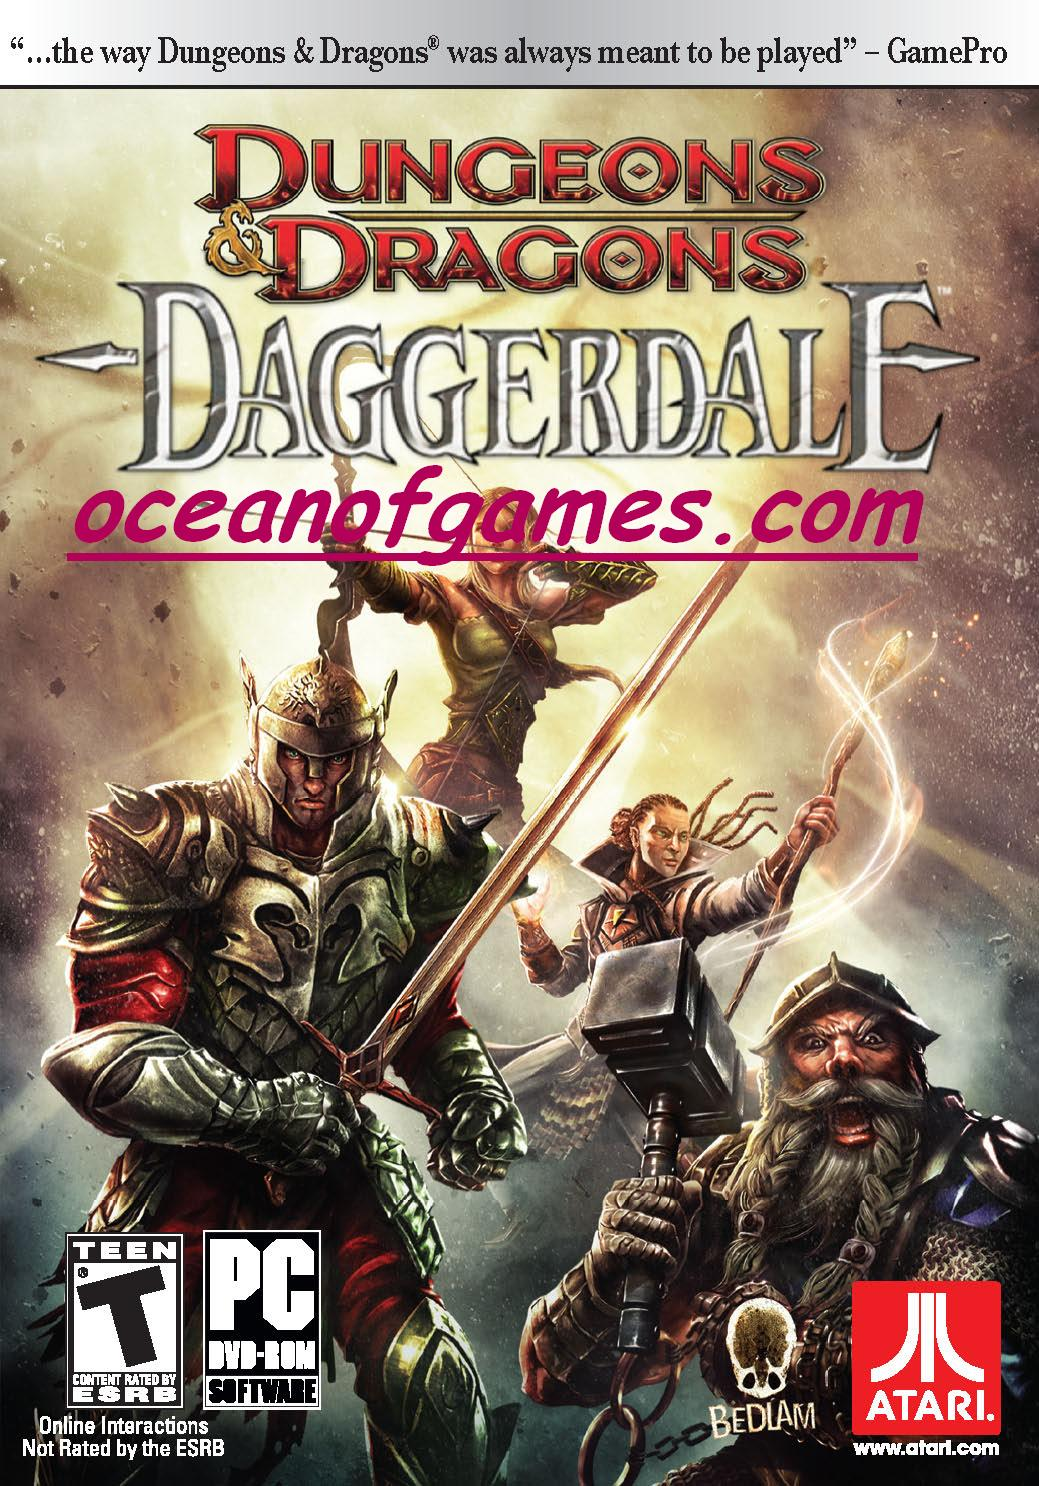 Dungeons And Dragons Daggerdale Free Download, Dungeons And Dragons Daggerdale Free Download